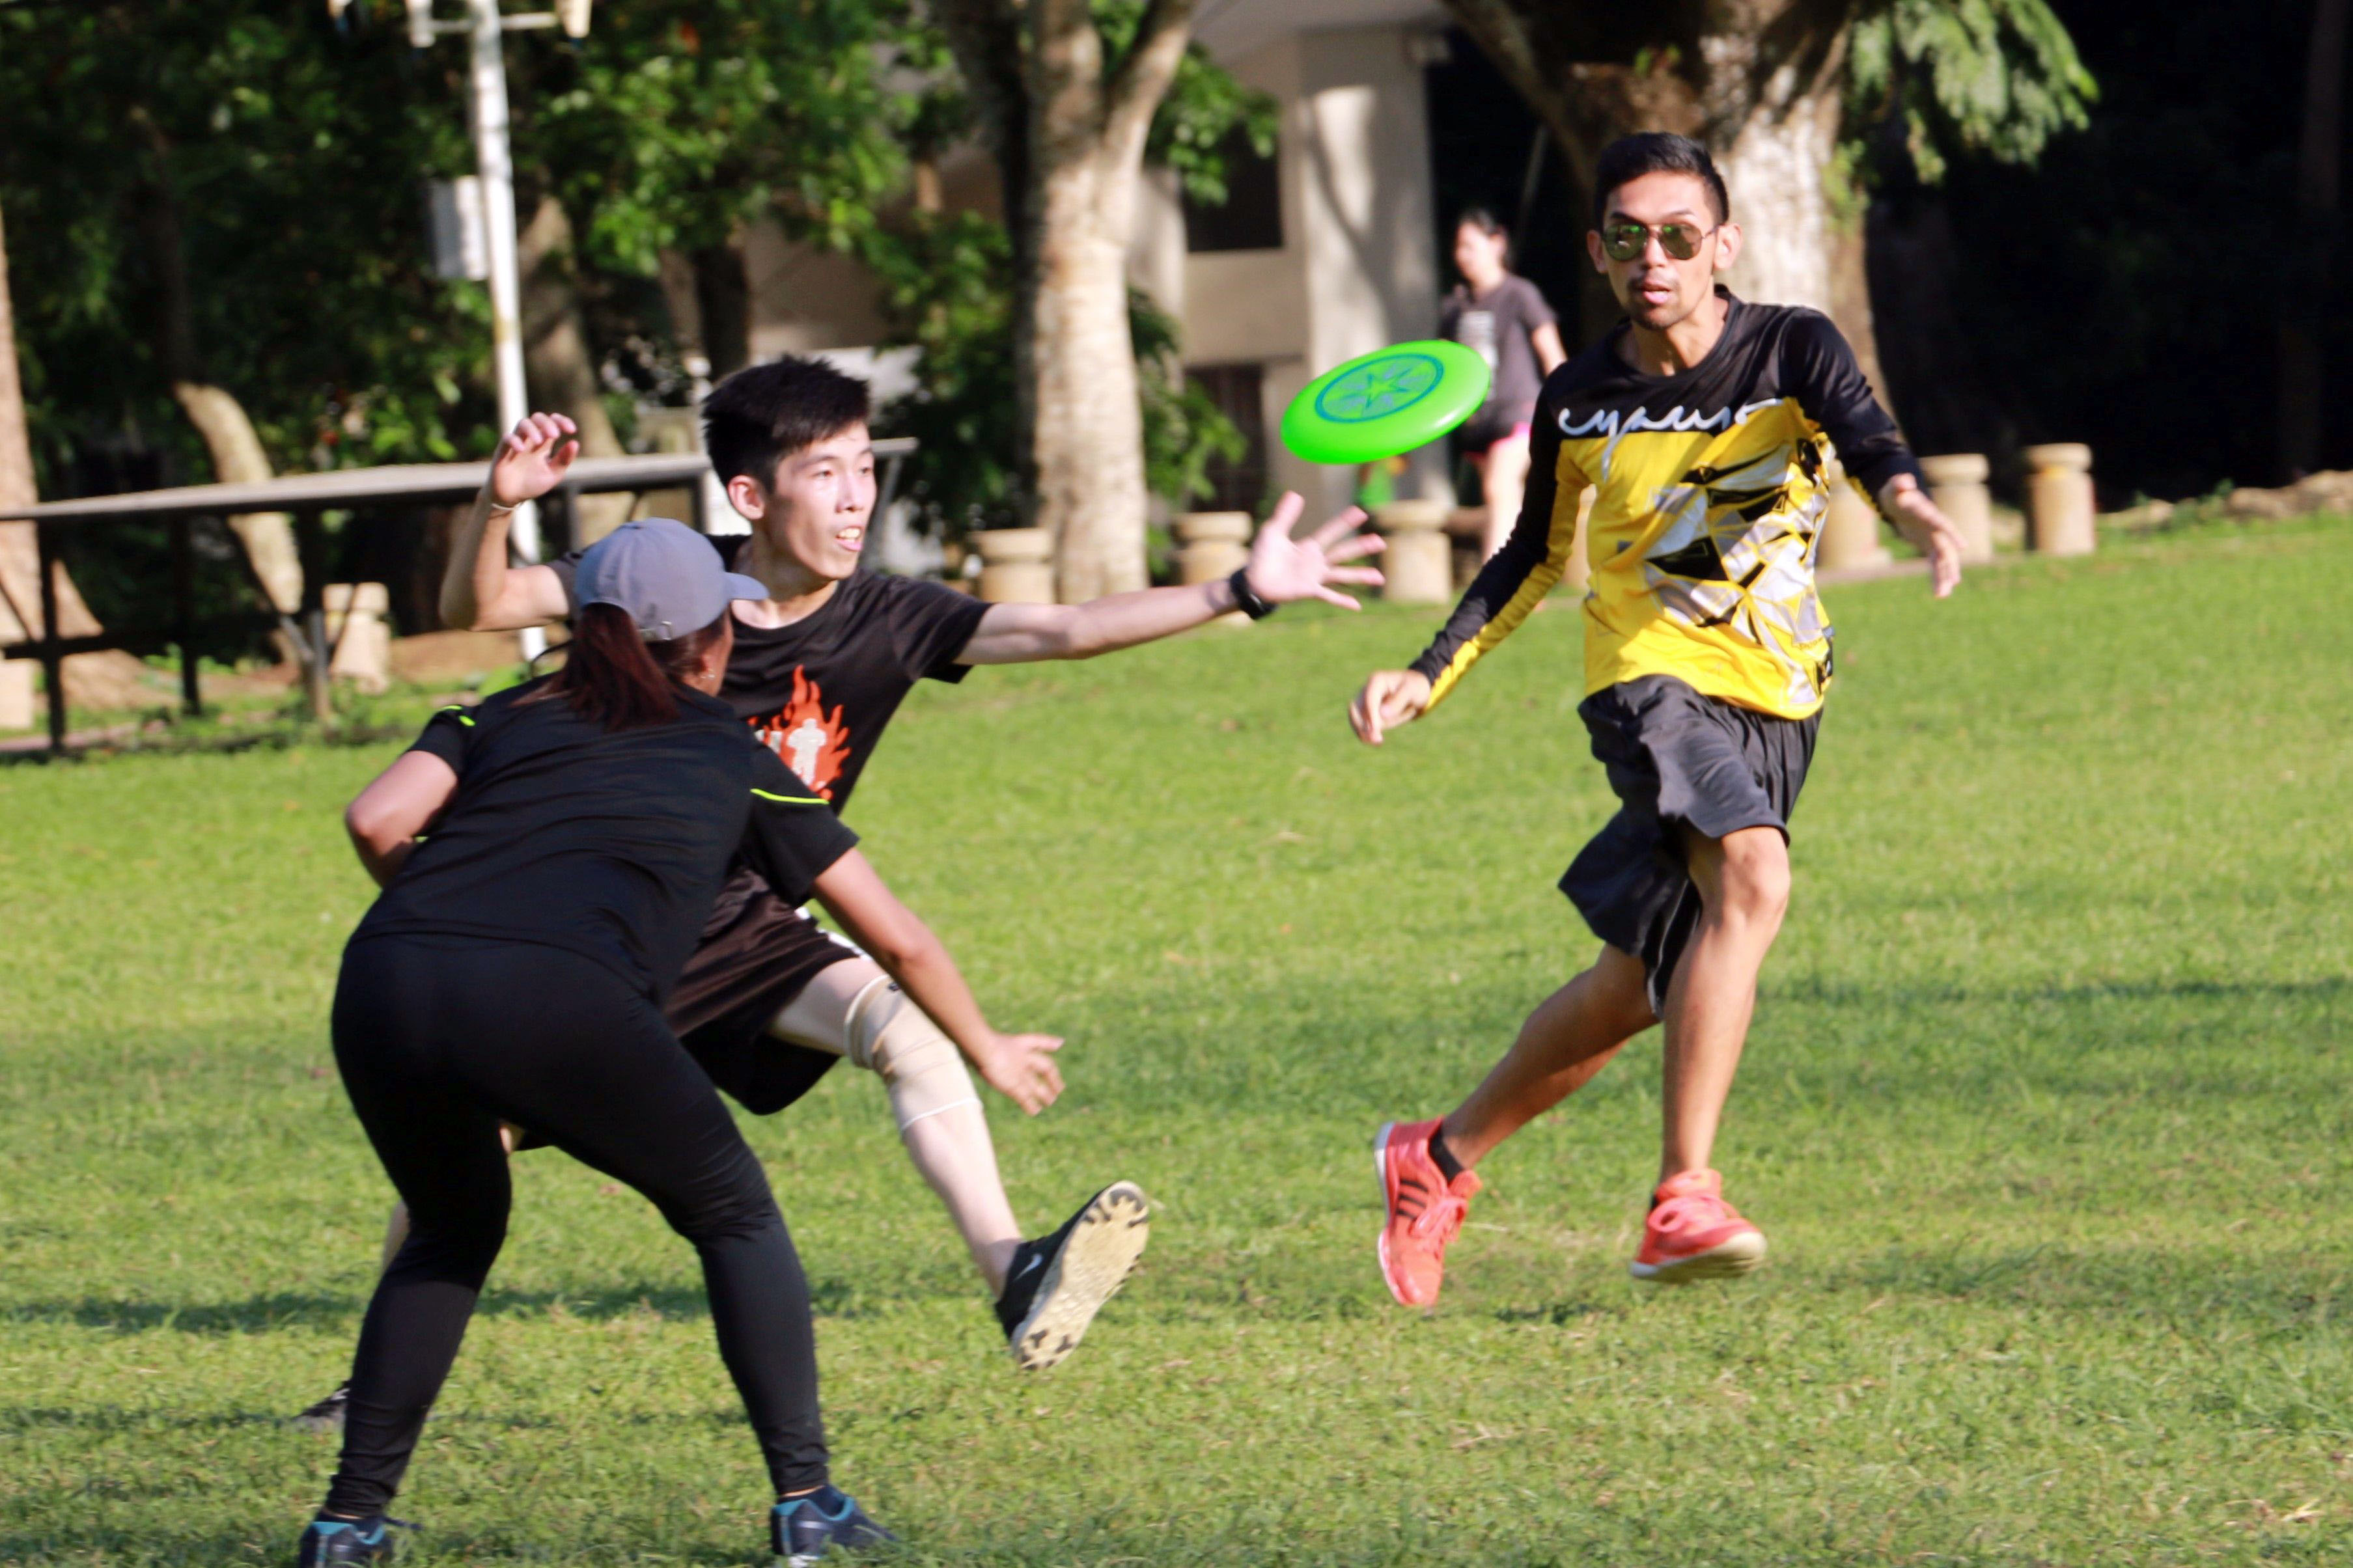 Ultimate frisbee, a universal recreational activity